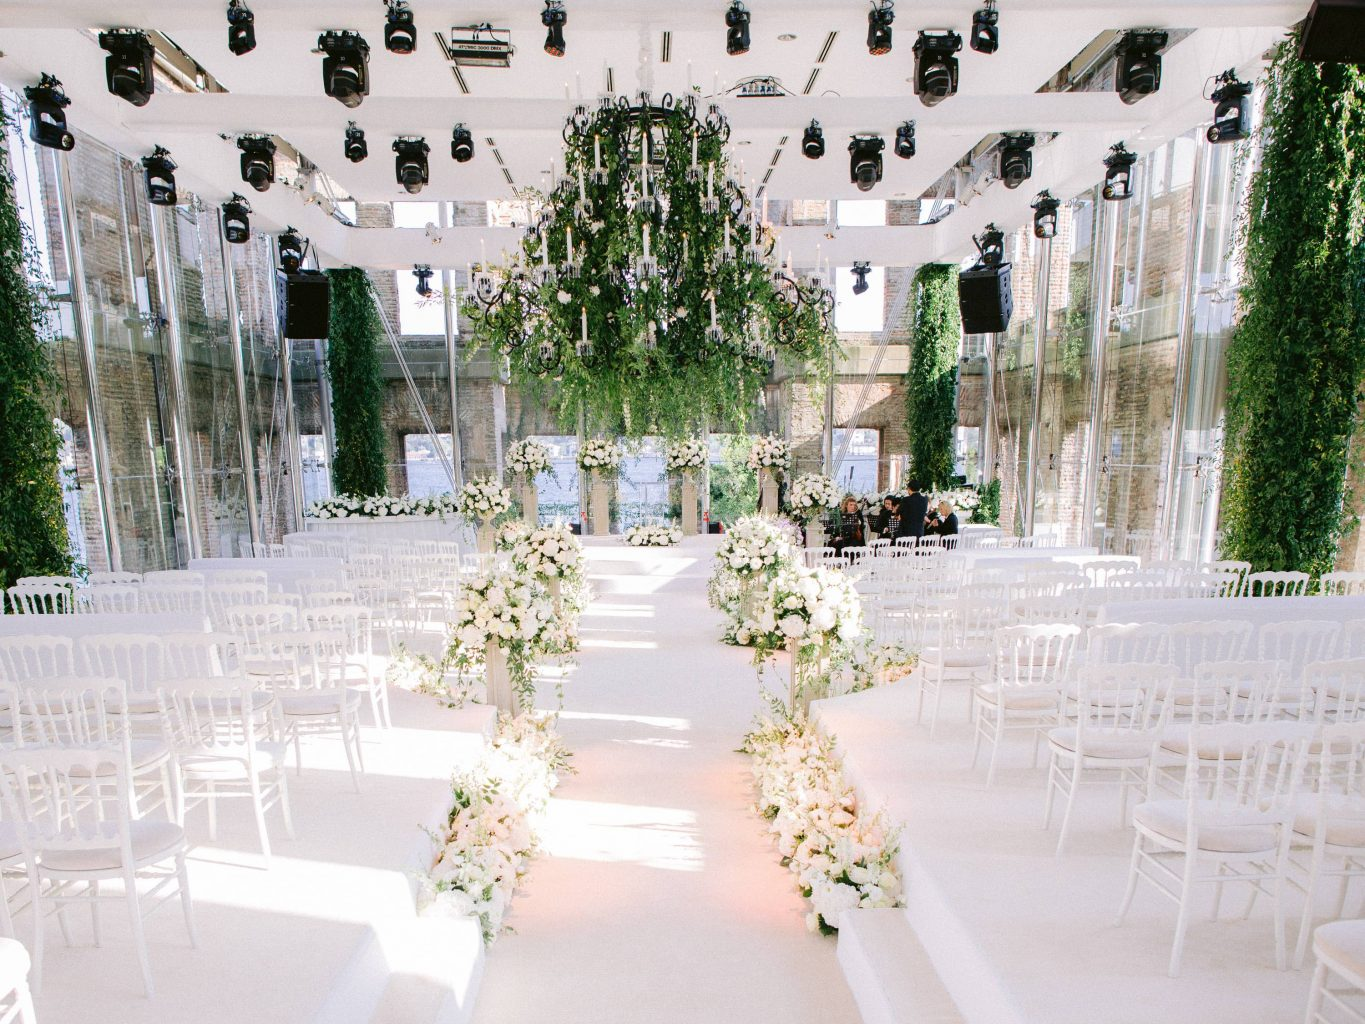 Ceremony decor at Esma Sultan at this Istanbul wedding weekend at Four Seasons Bosphorus | Photo by Allan Zepeda